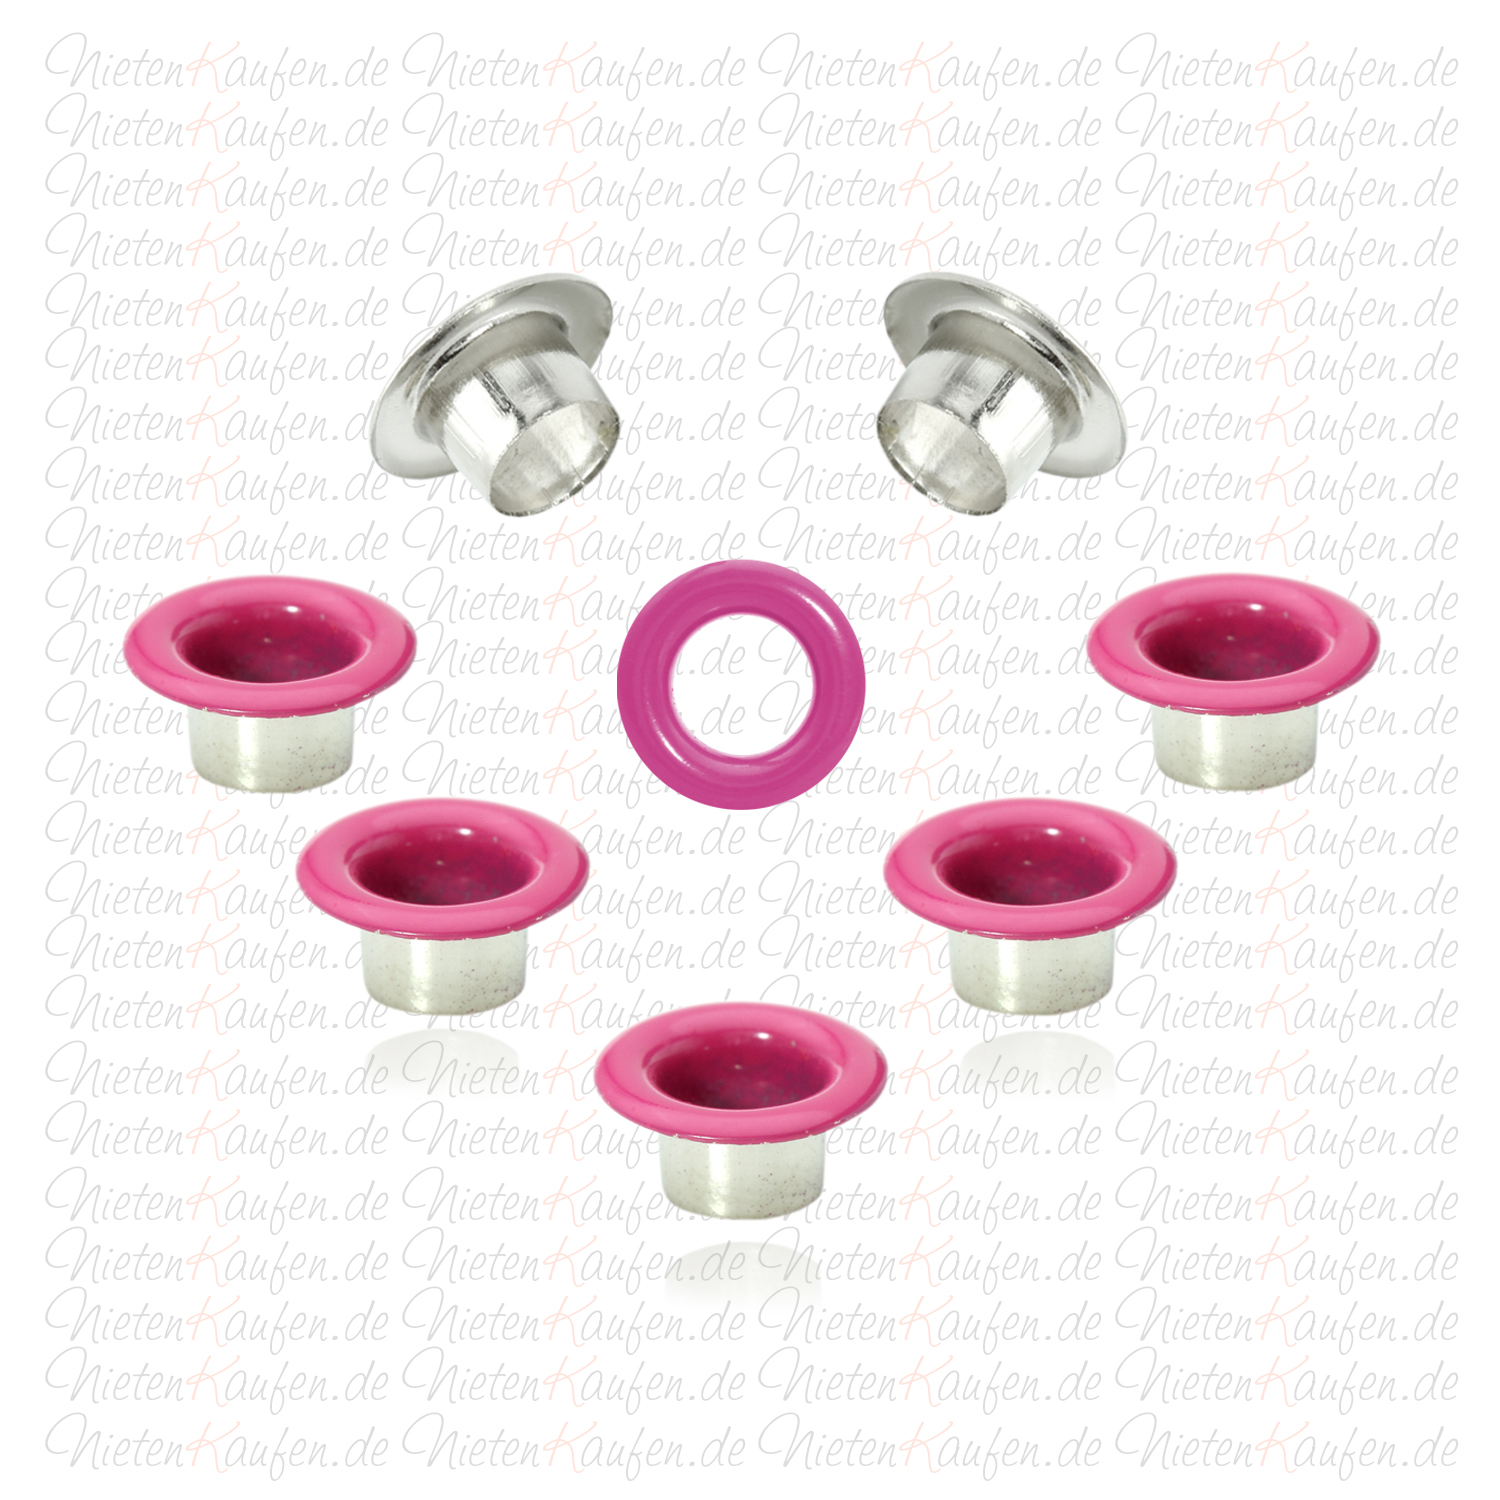 Ey 08 Eylets pink 5mm